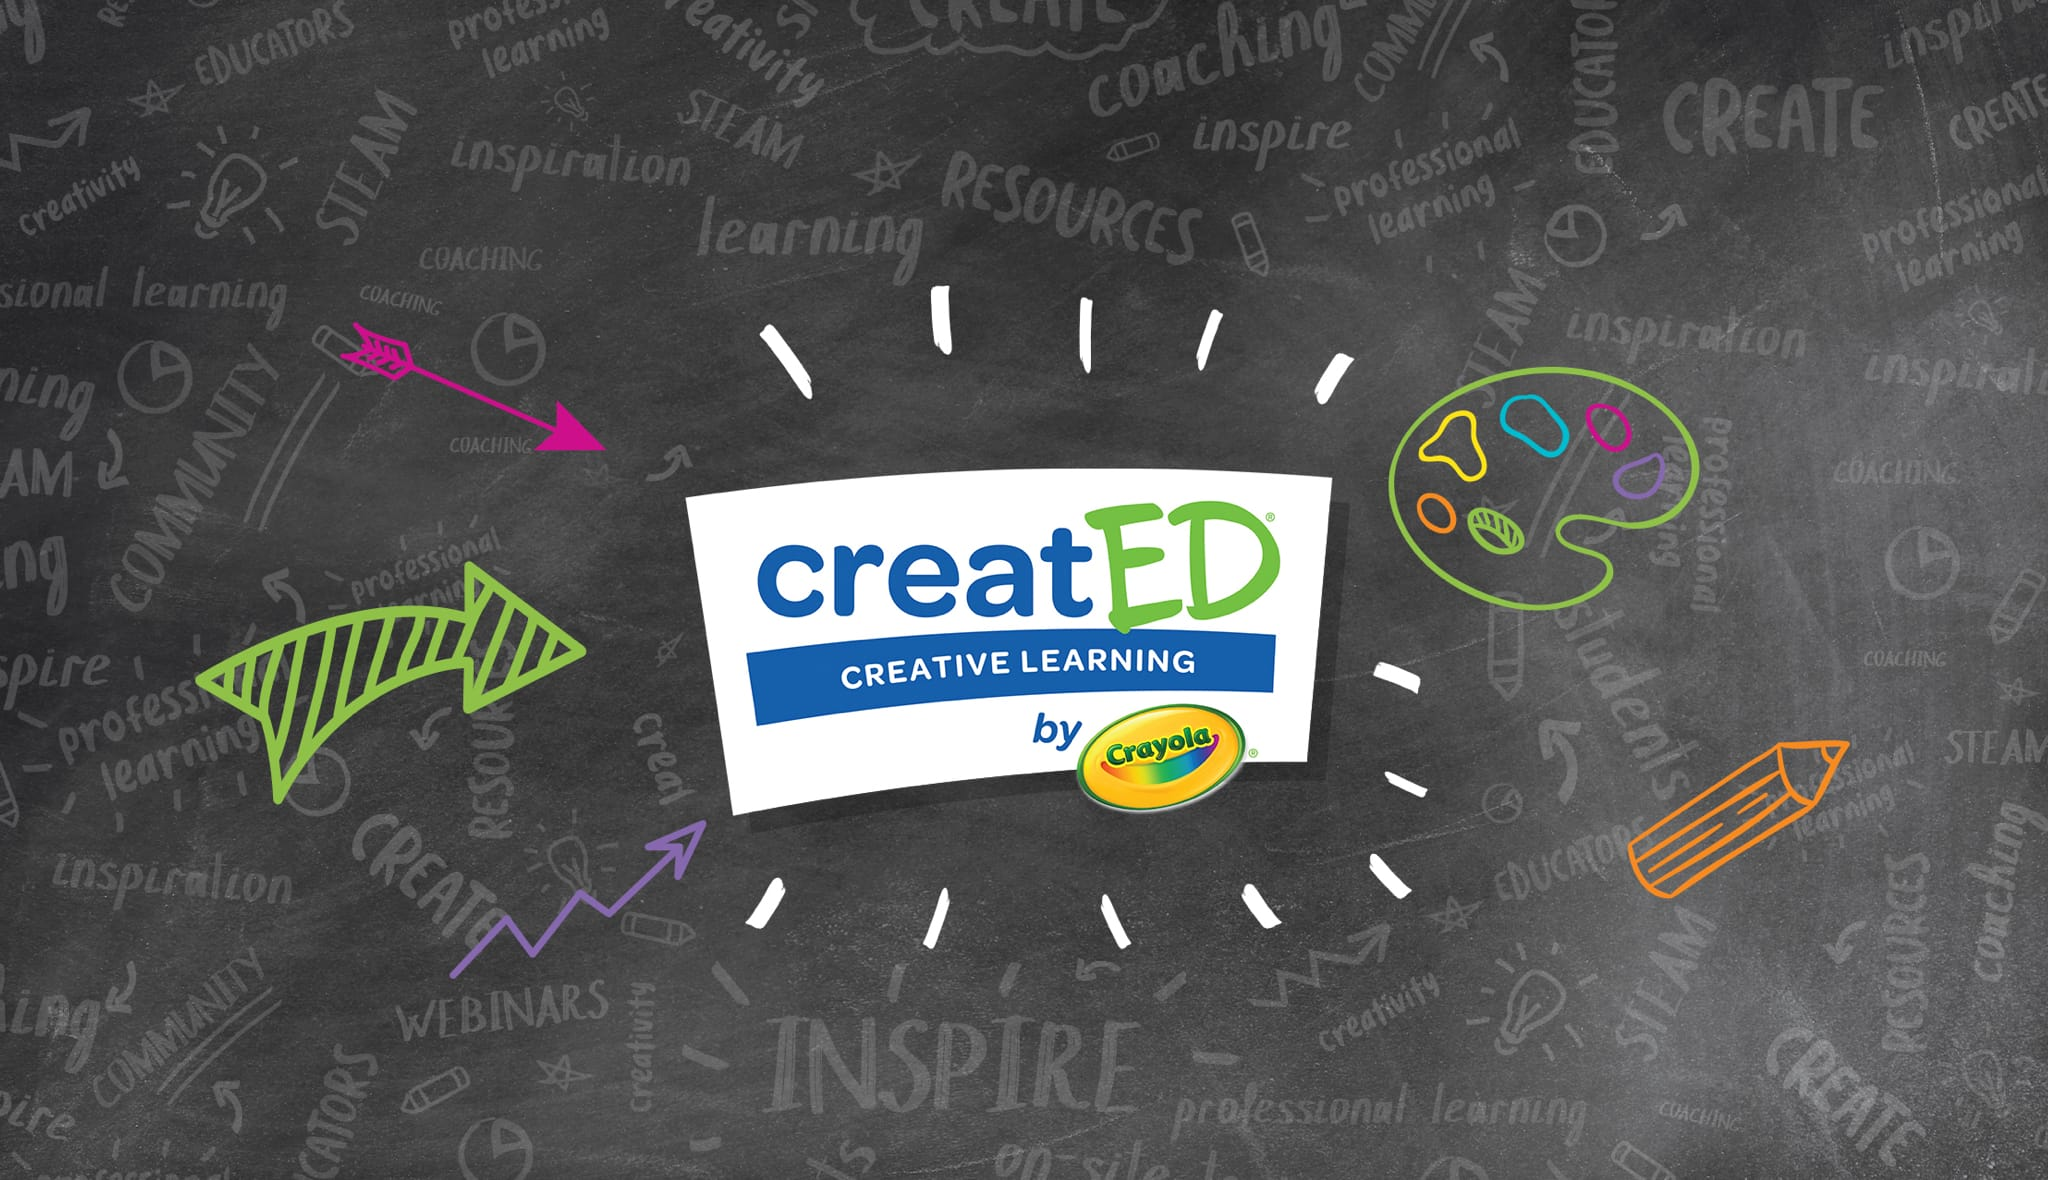 Crayola CreatED Campaign Support